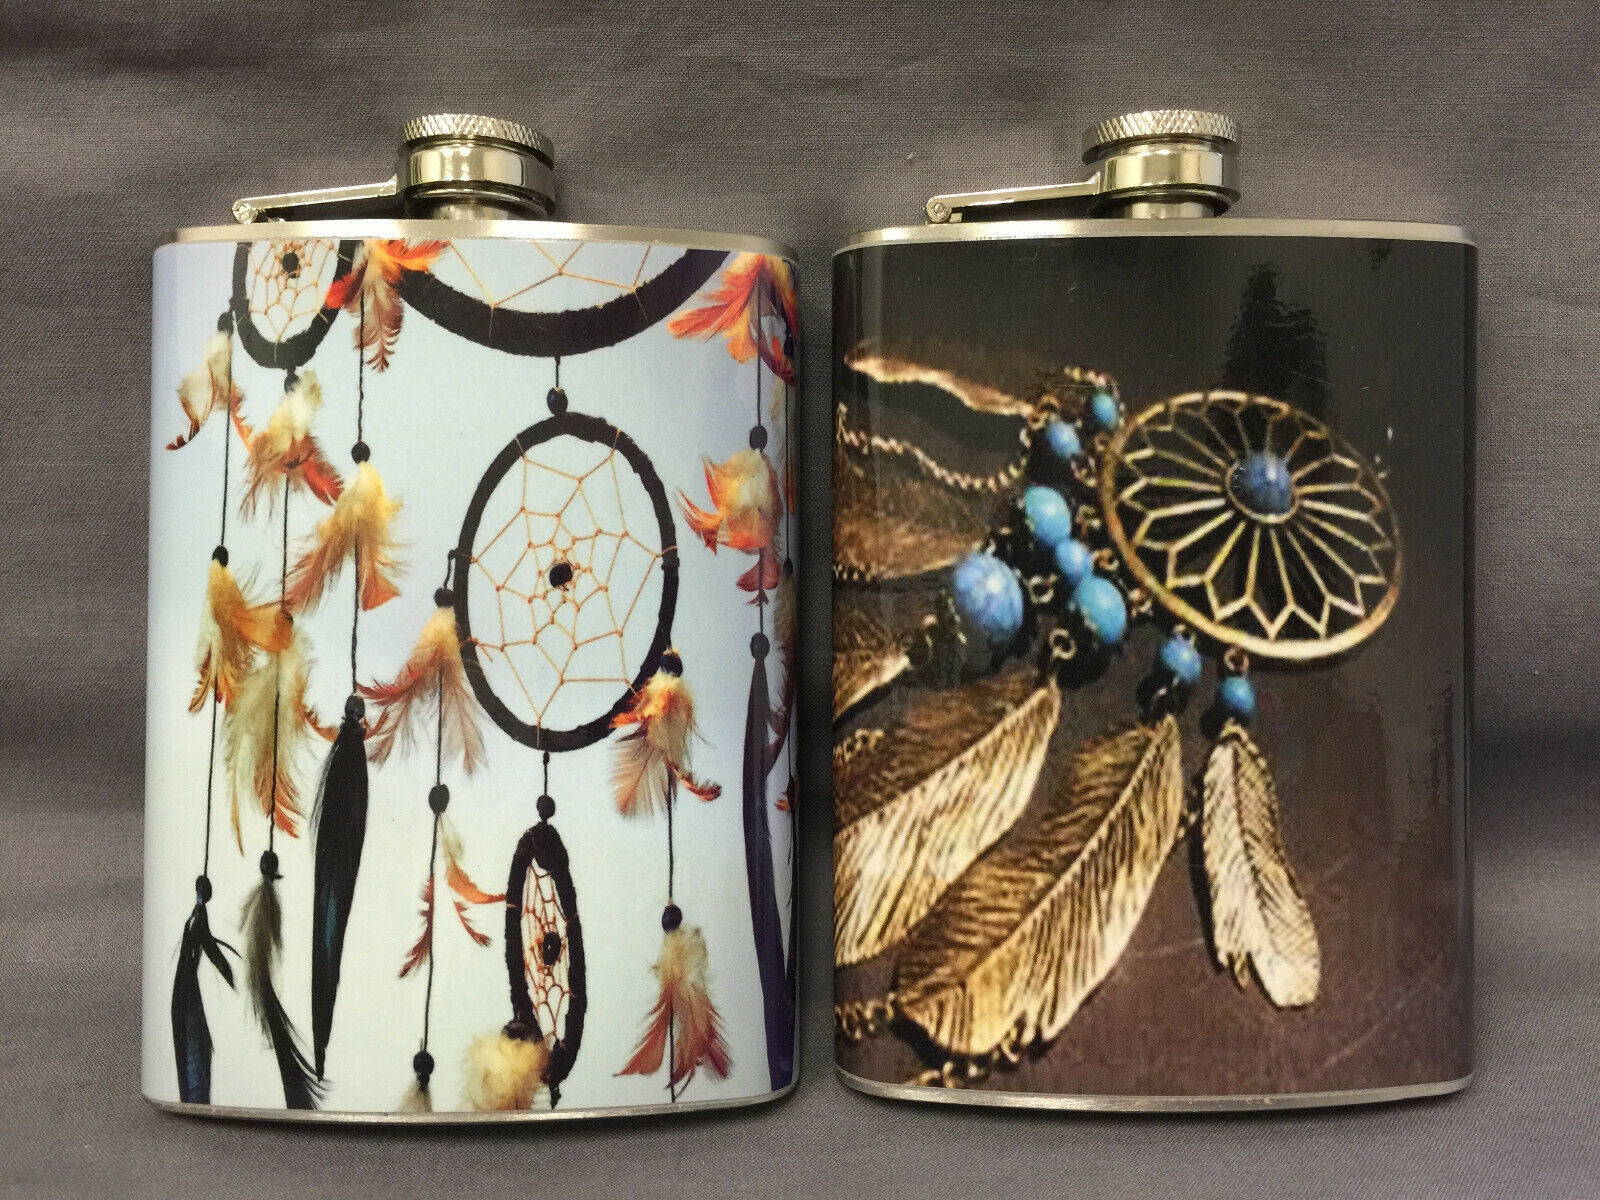 Set of 2 Dream Catcher D2 & 4 Flasks 8oz Stainless Steel Drinking Whiskey